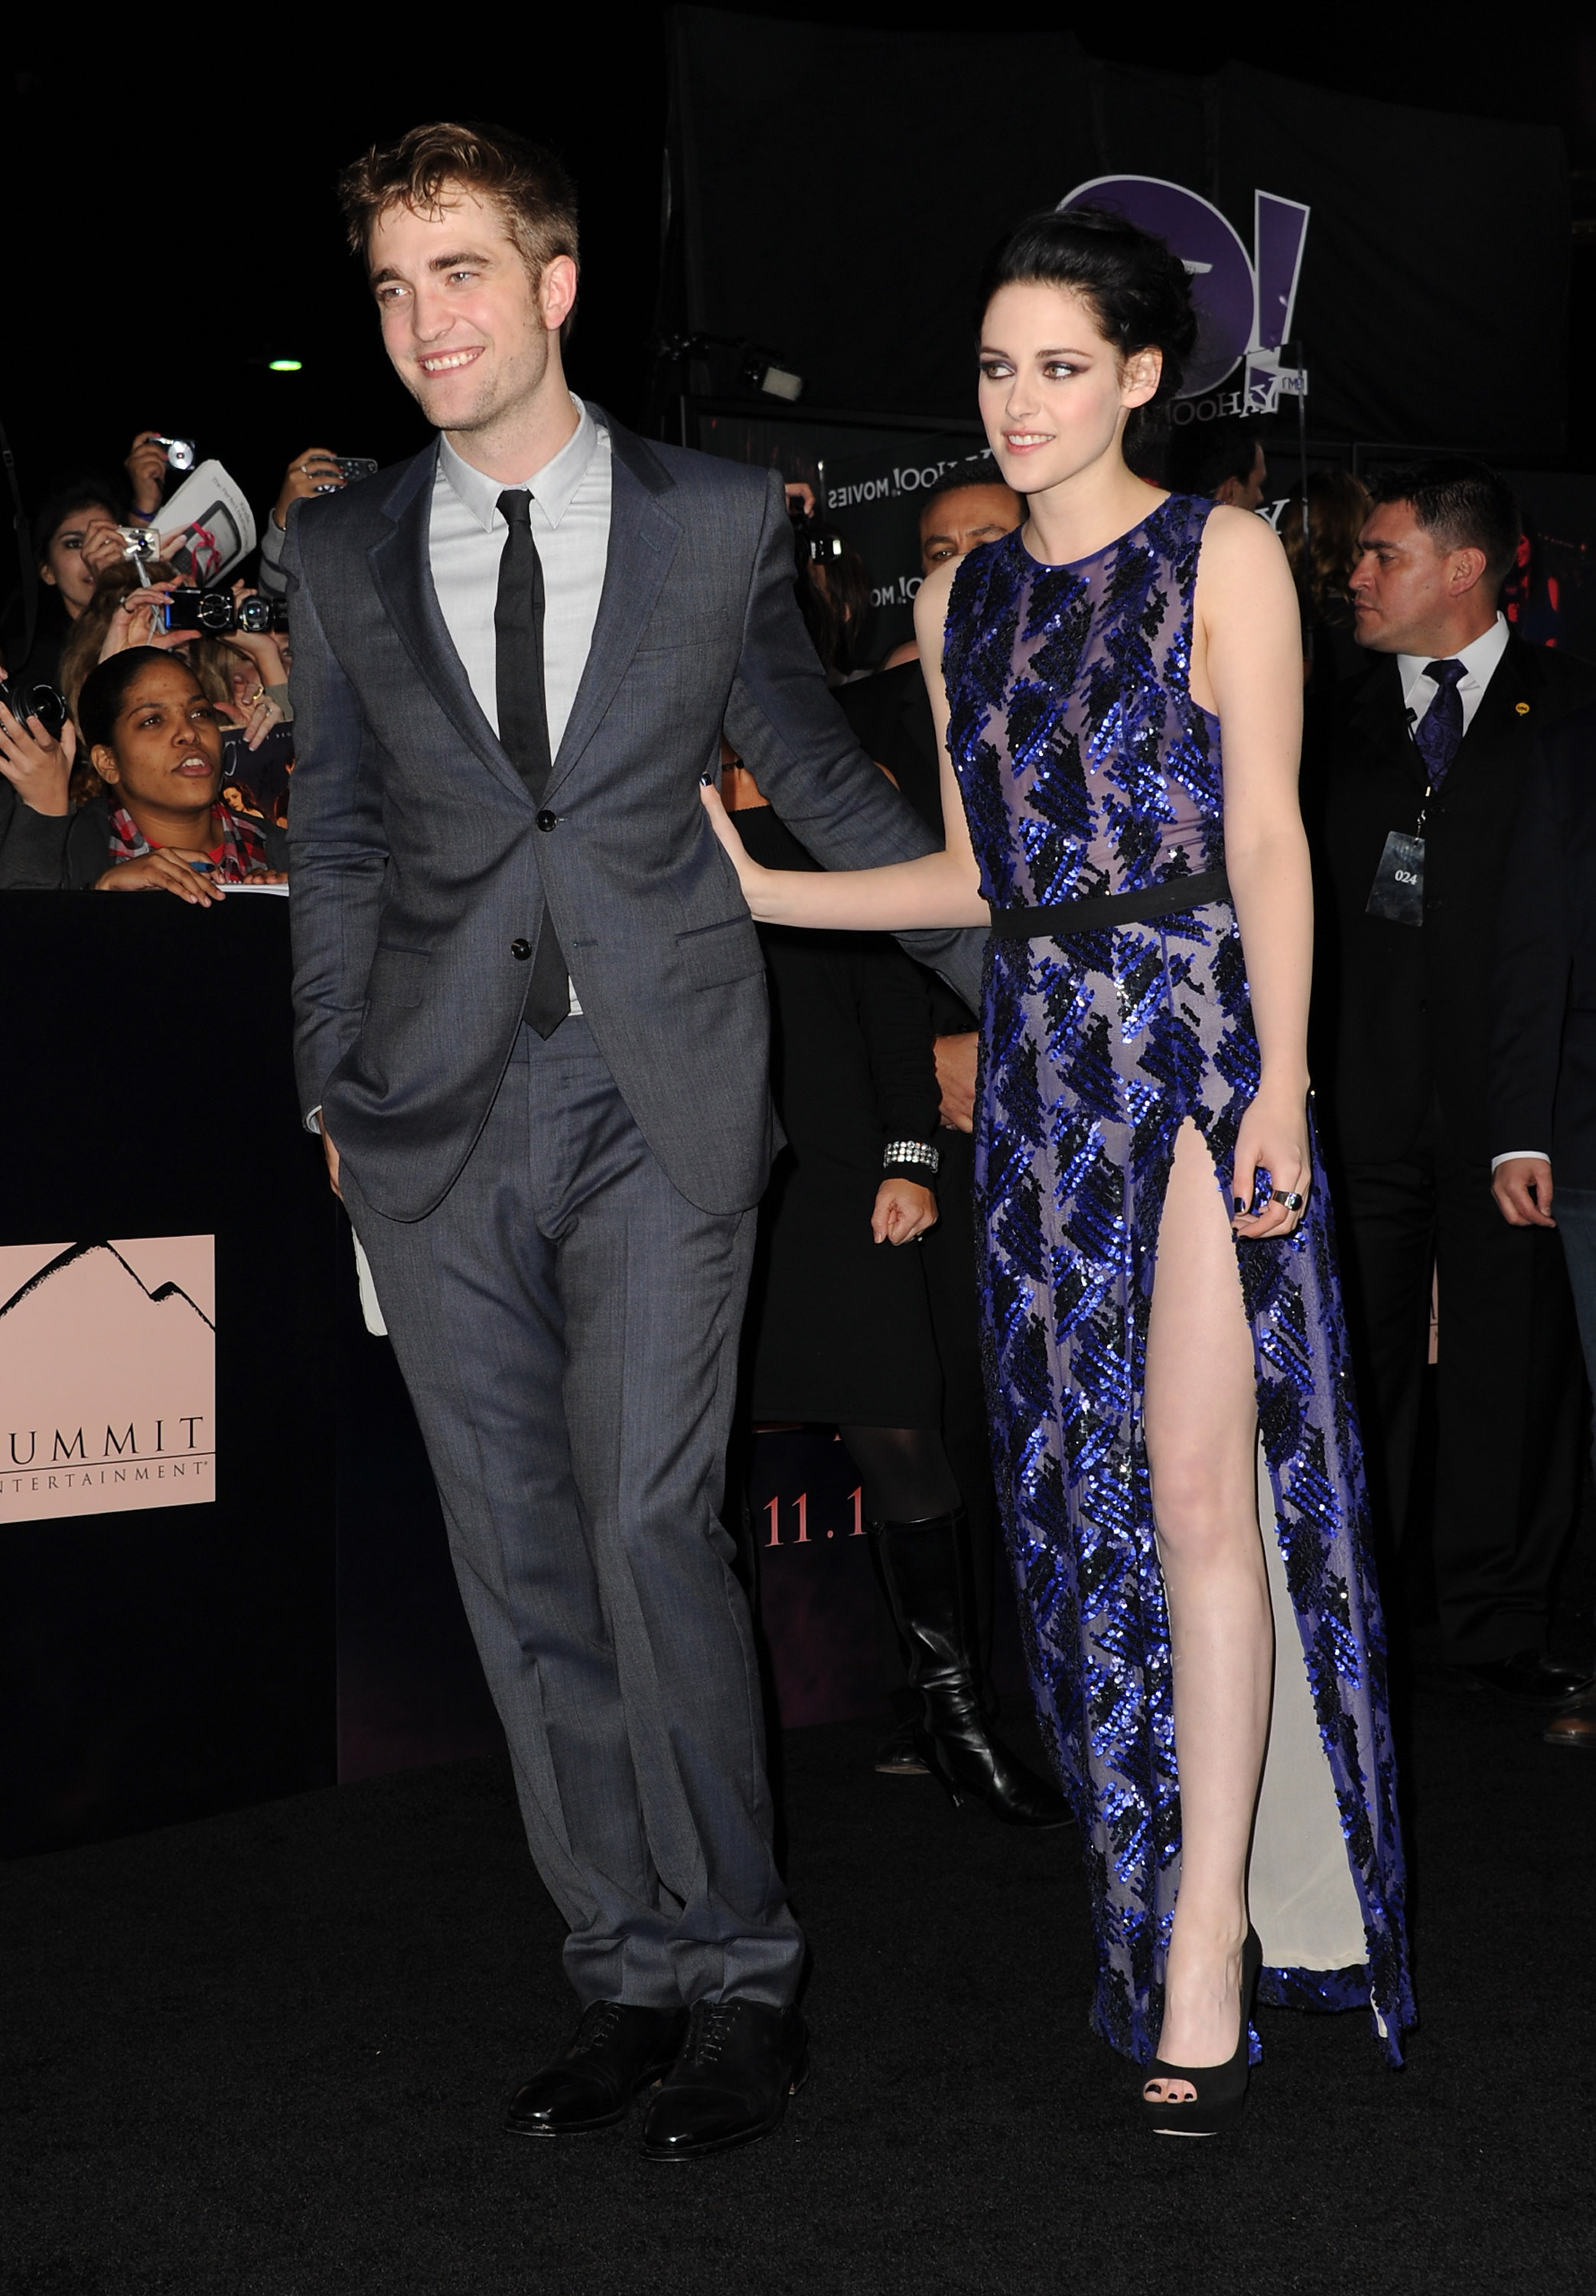 Kristen Stewart put her hand on Robert Pattinson's back while on the black carpet.